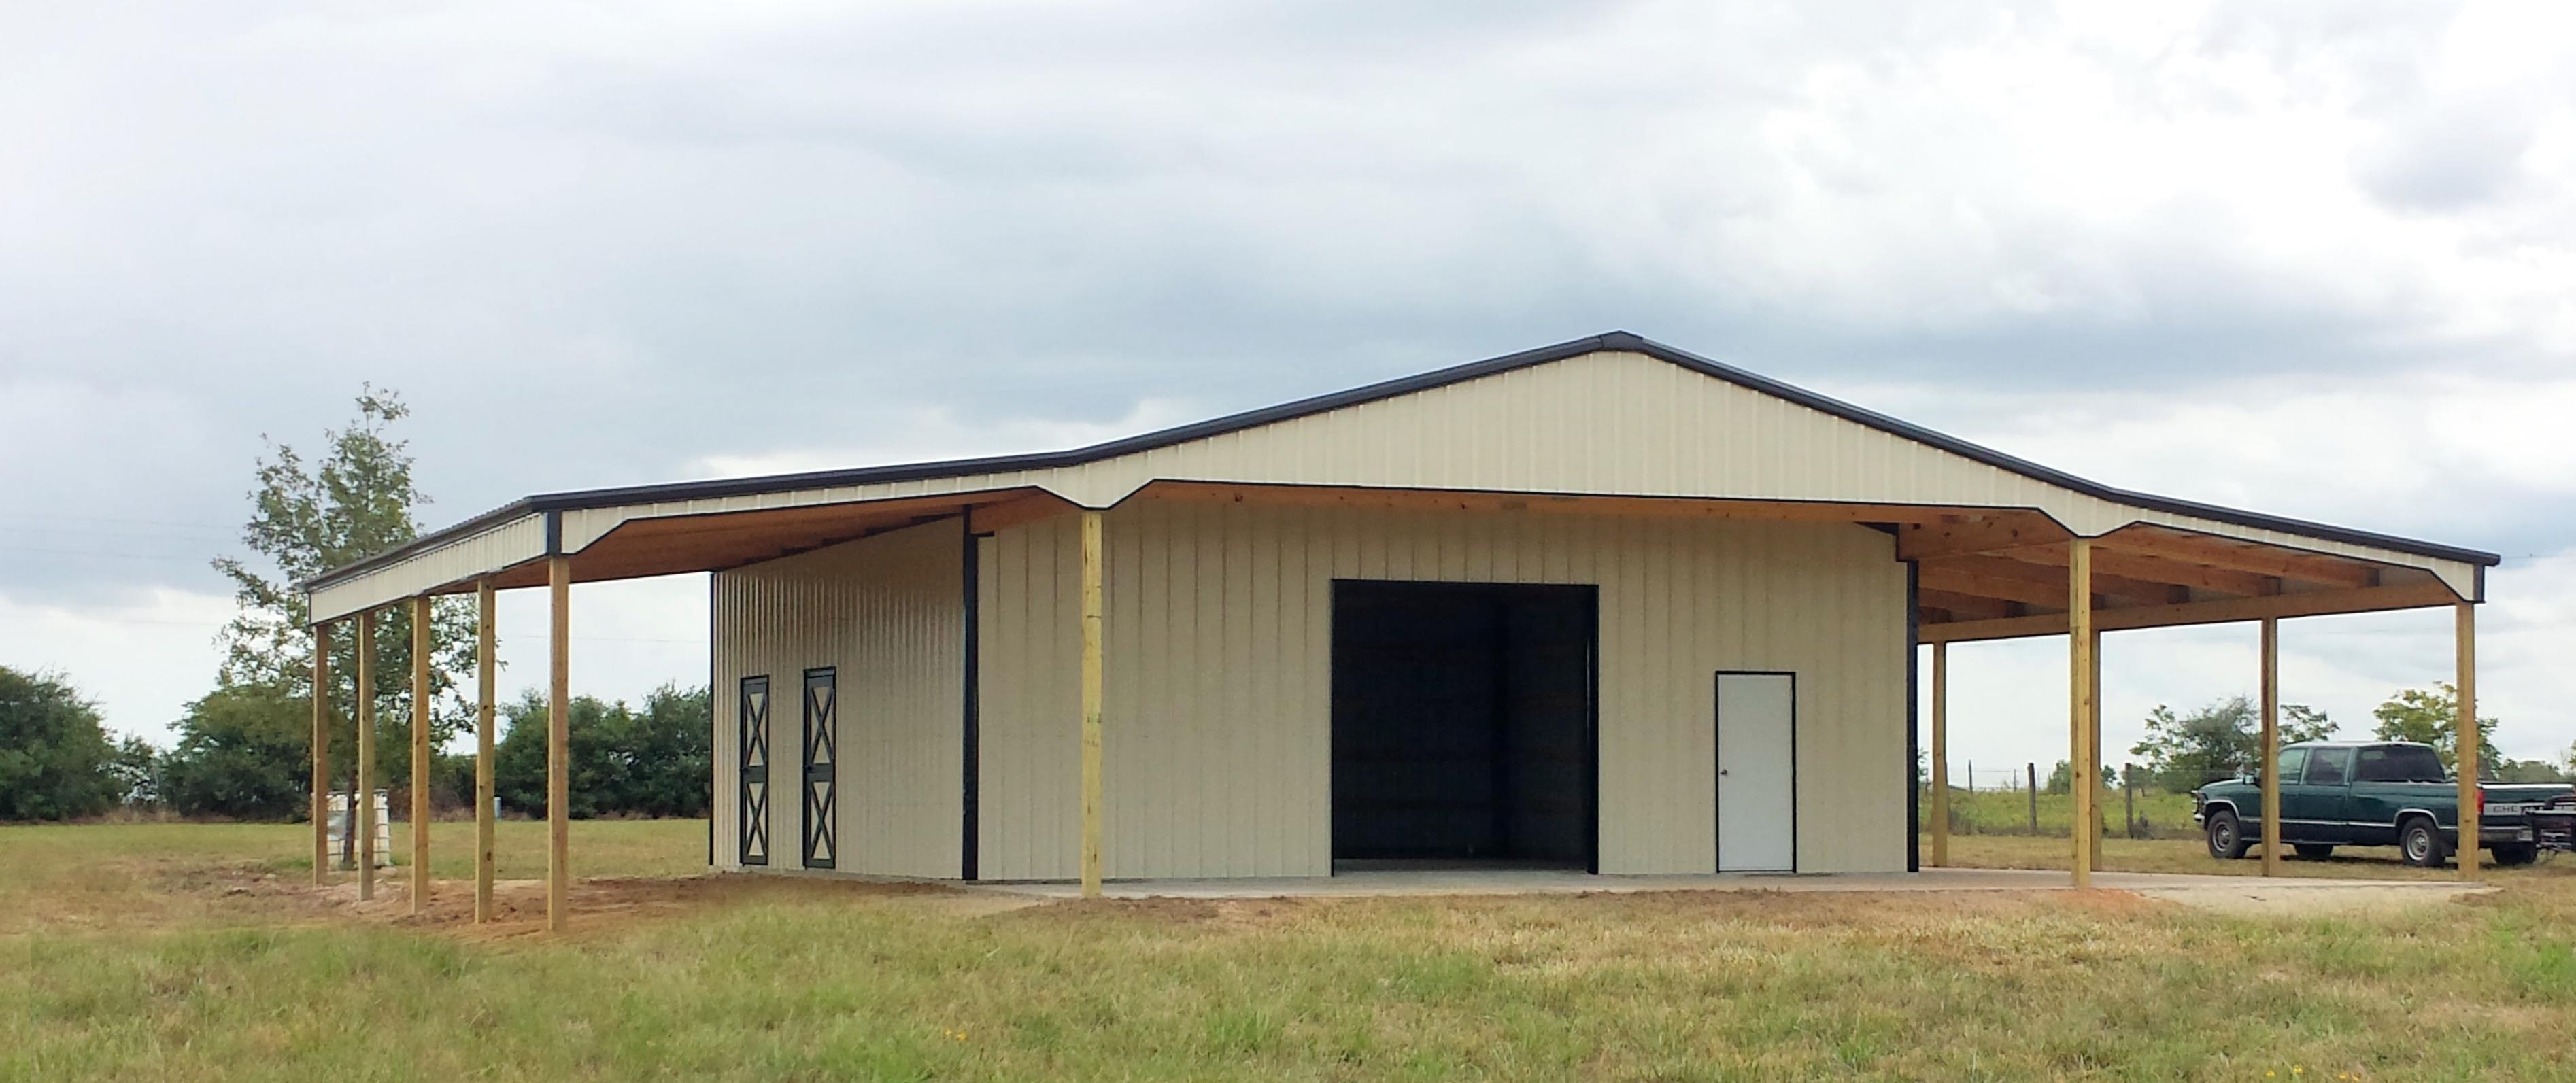 Barn Metal Project Gallery Hilco Metal Building Metal Roofing Supply